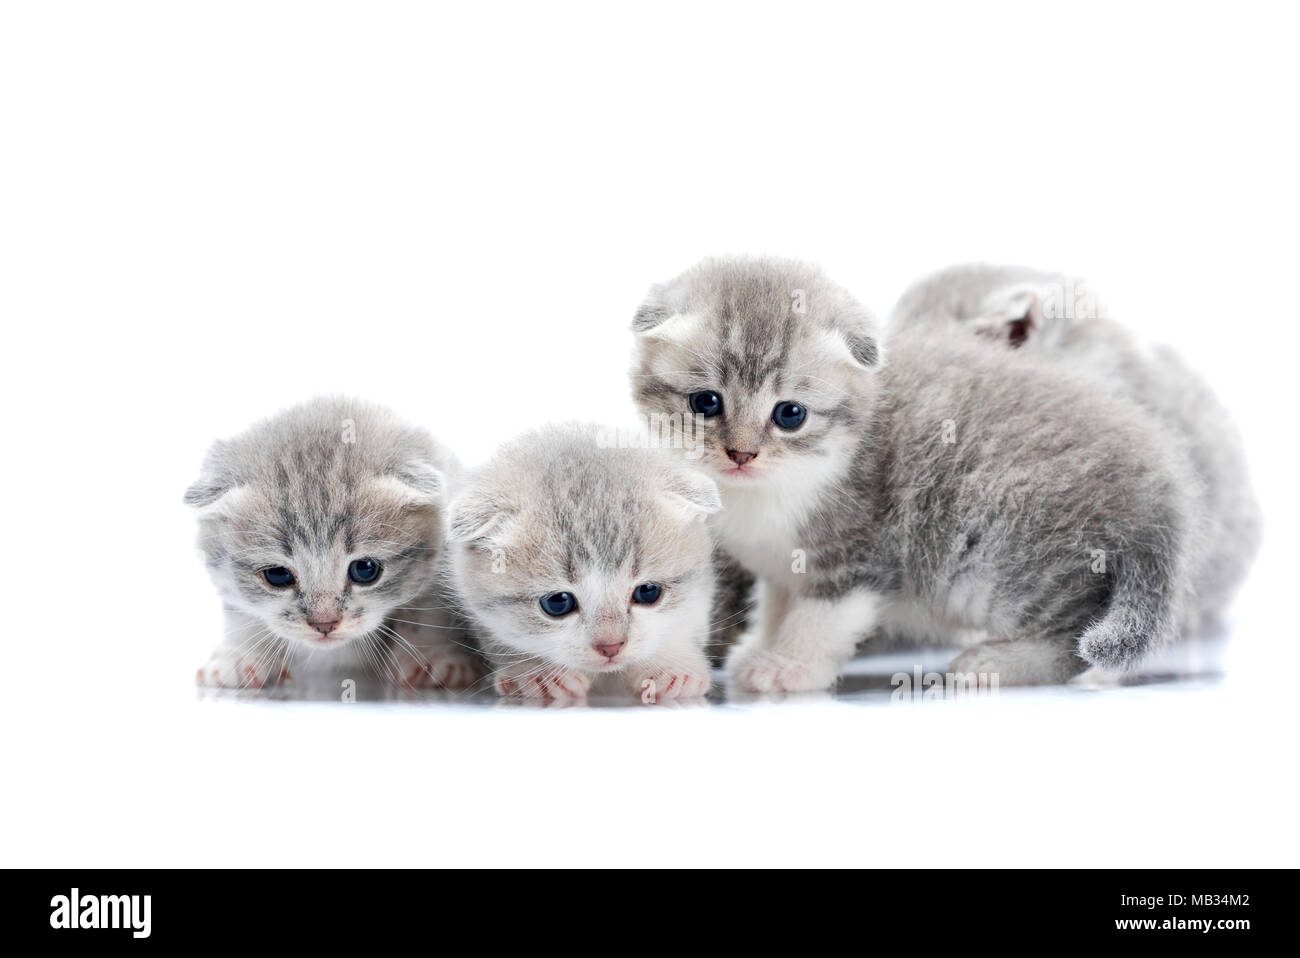 Small newborn cute kittens being curious and anxious while exploring world around them on photoset in white studio. Gray cute adorable fluffy cats playing blue eyes paws fur happiness - Stock Image